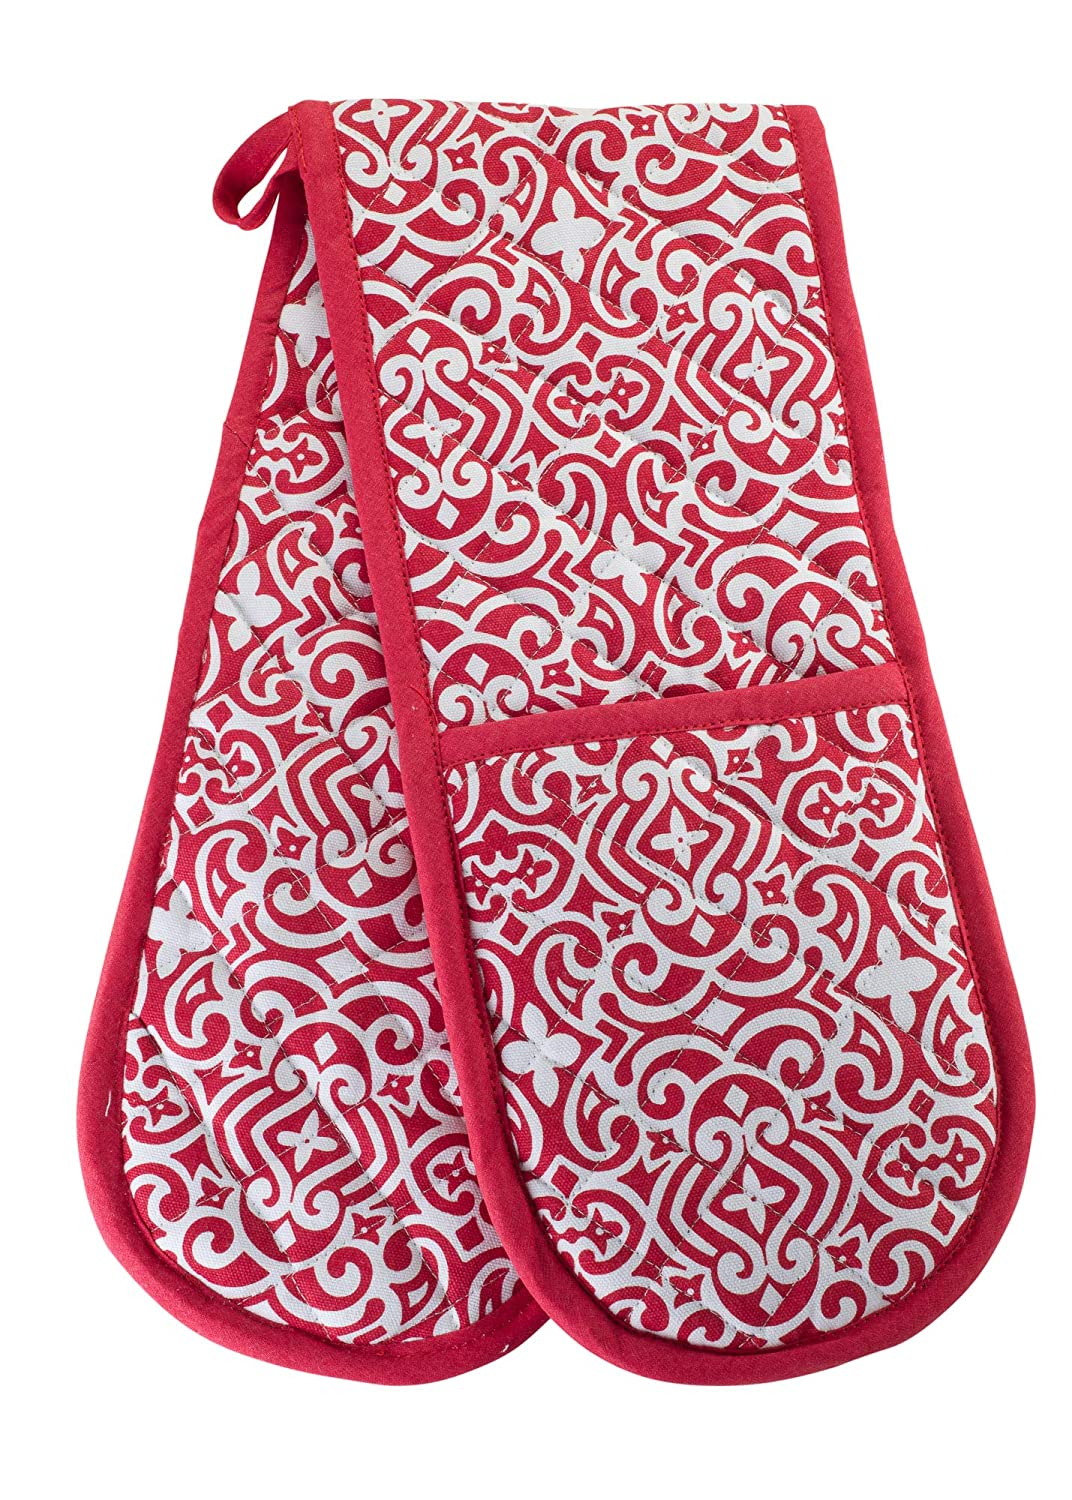 KreativeKitchenry Smart Home, Pretty Red Swirls, 1 Piece, Long Double Oven Mitts Gloves, Heat Resistant, 100% Cotton, Extra Thick, Quilted